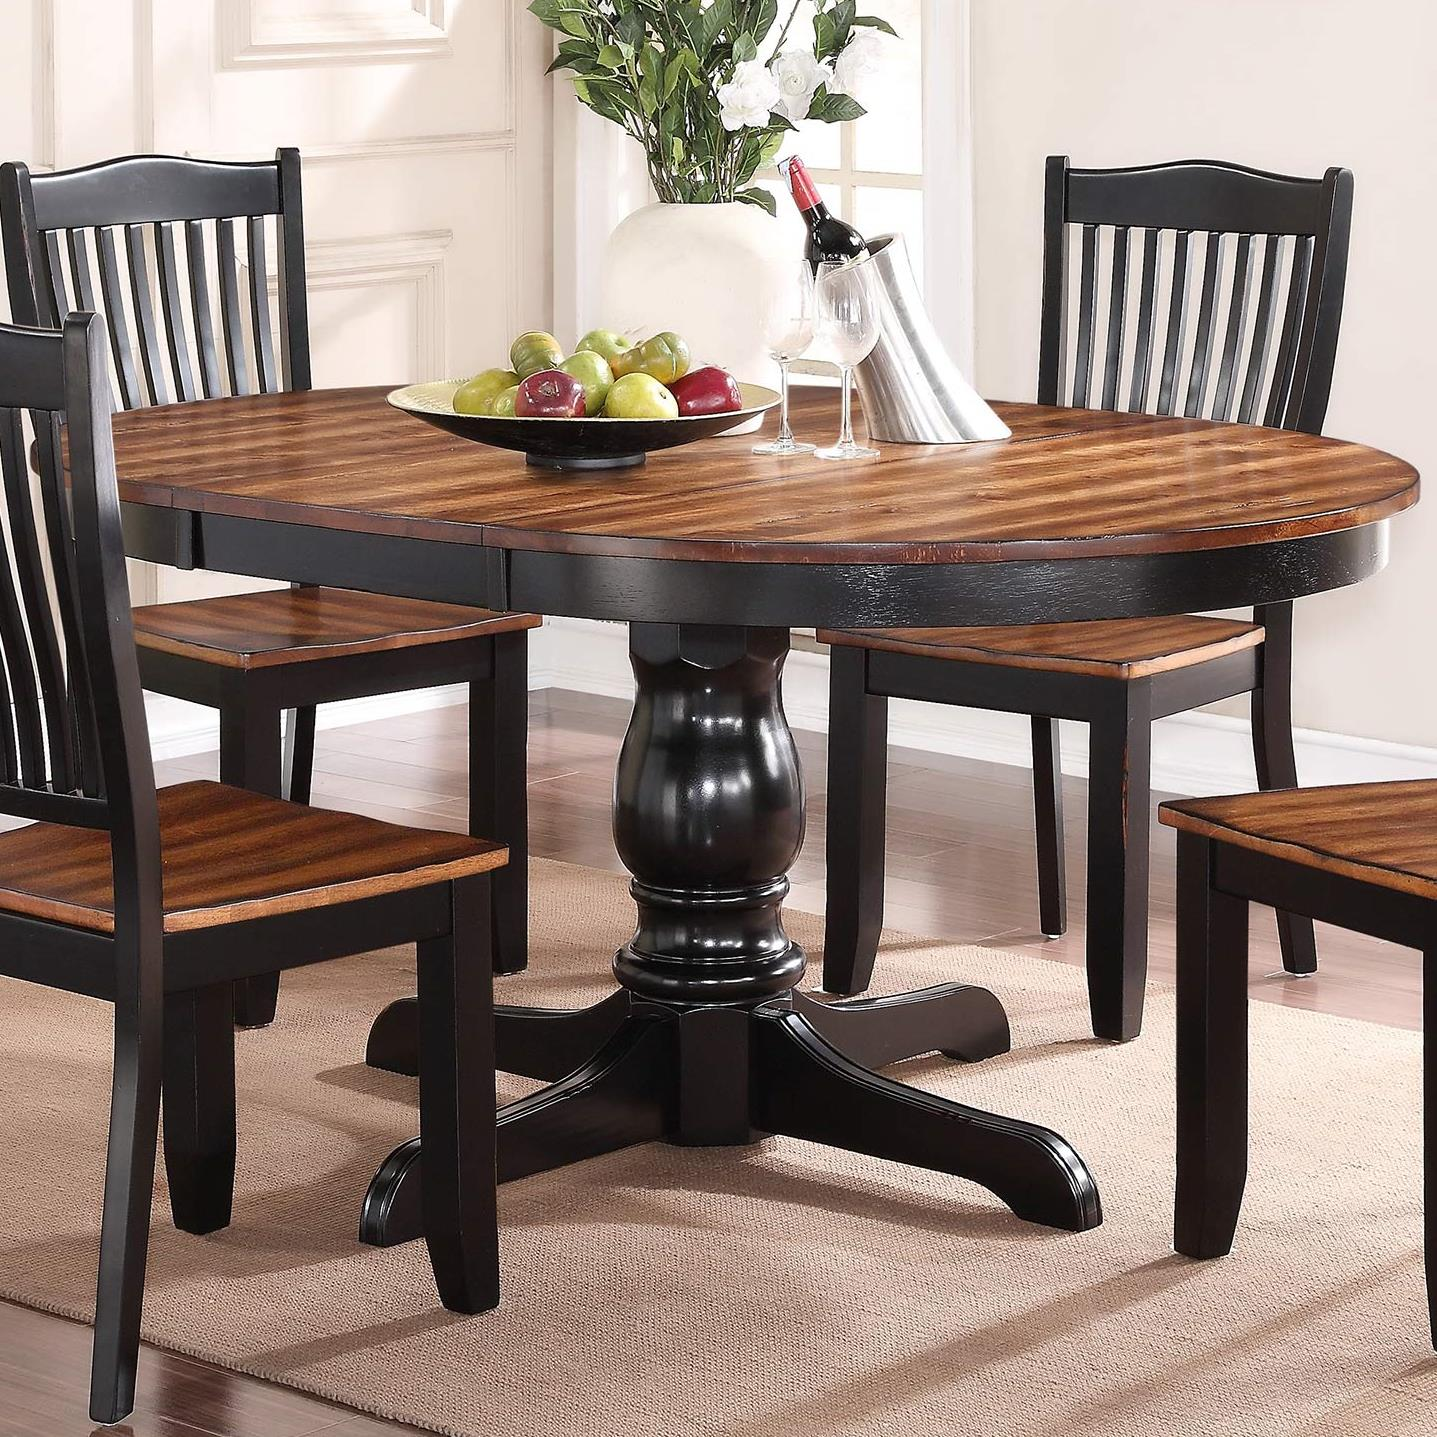 "Winners ly Carson 66"" Round Single Pedestal Table with Leaf"